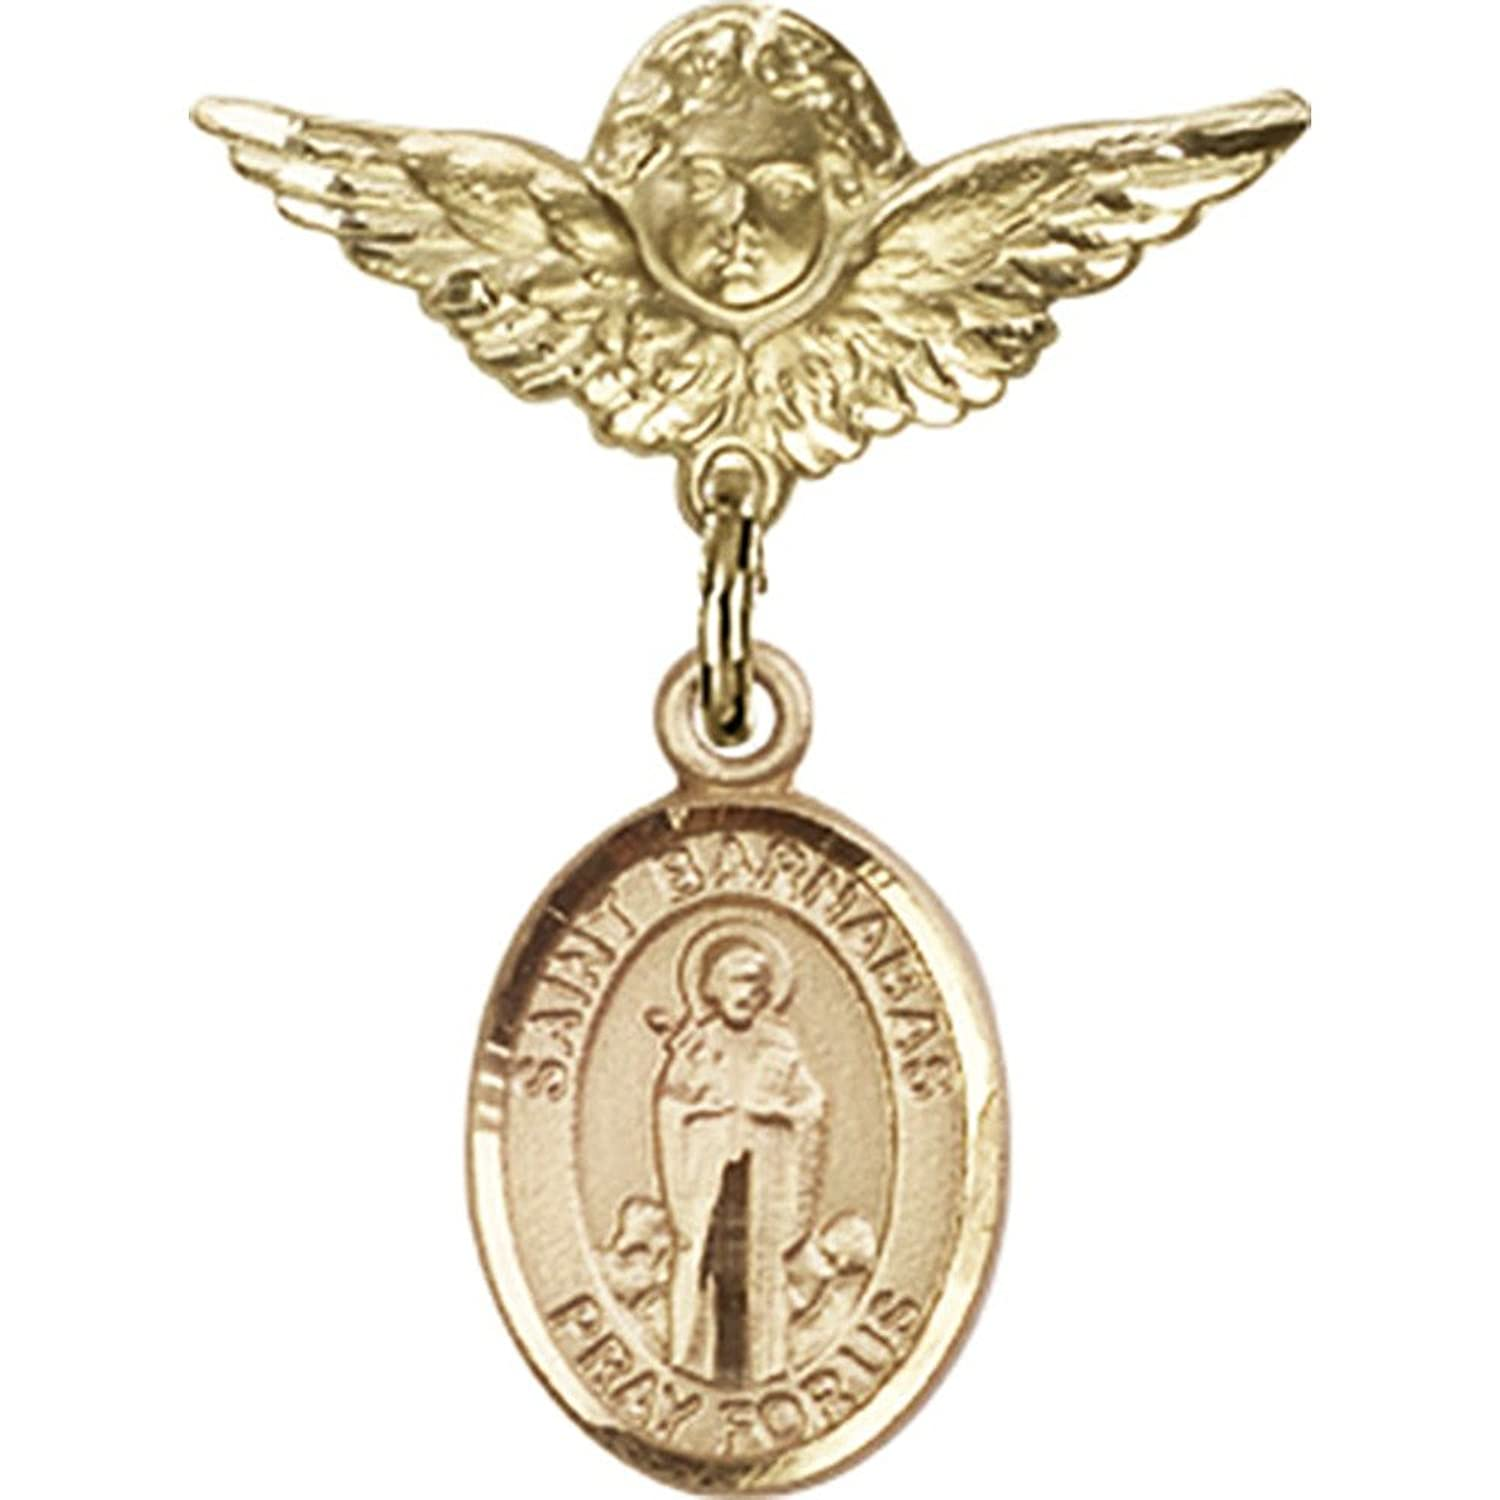 14kt Yellow Gold Baby Badge with St. Barnabas Charm and Angel w/Wings Badge Pin 1 X 3/4 inches 14kt yellow gold baby badge with st barnabas charm and angel w wings badge pin 1 x 3 4 inches